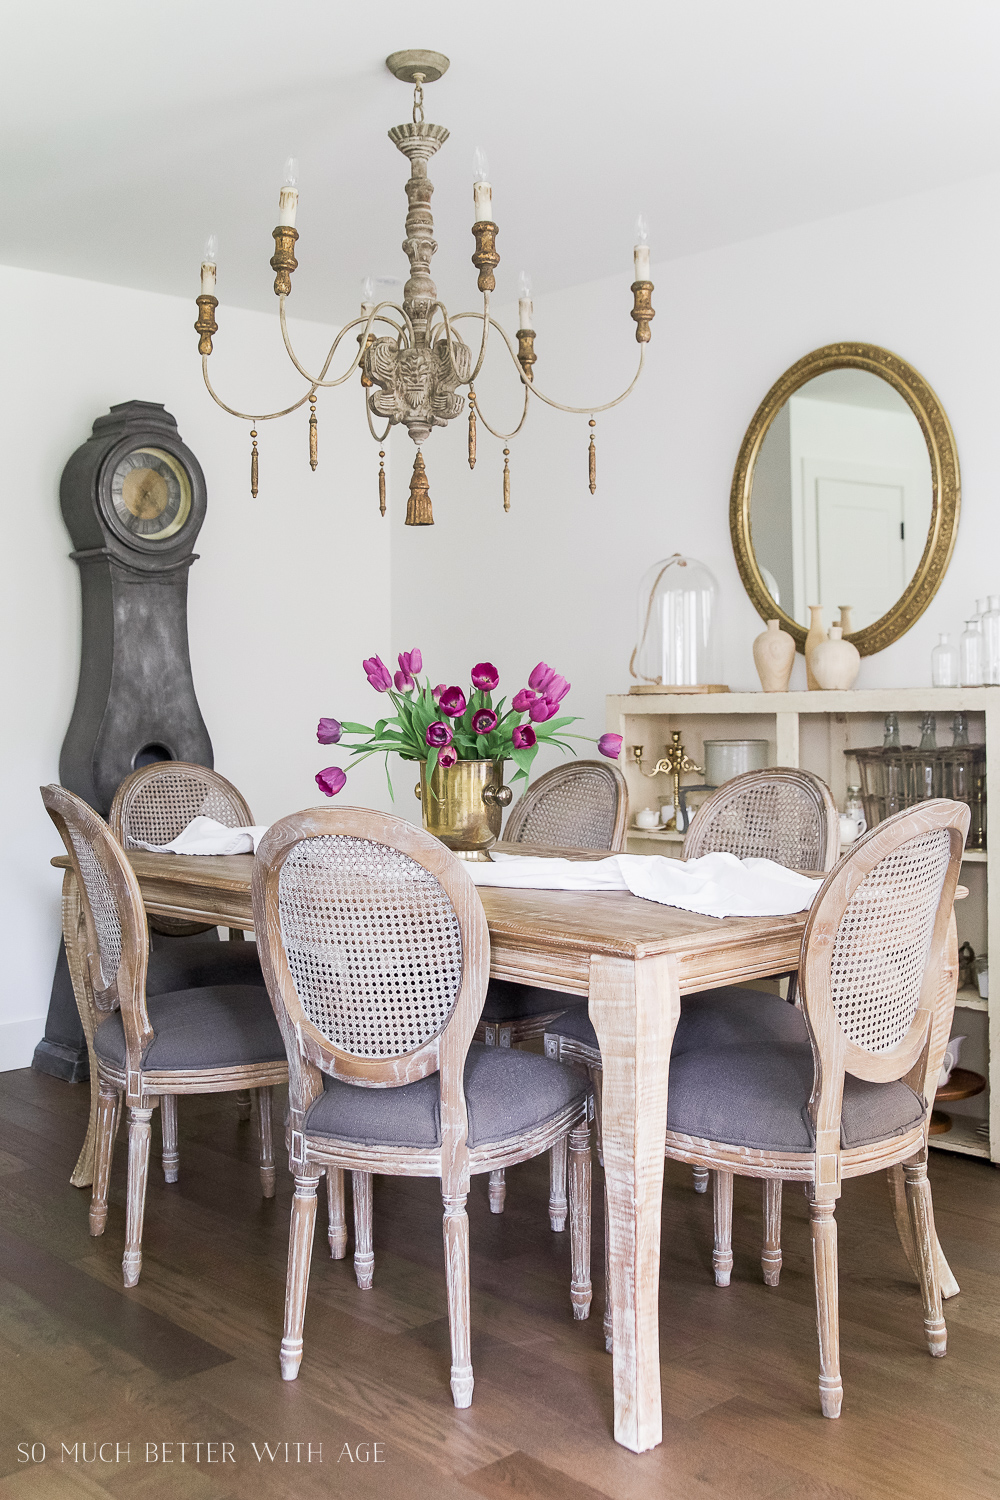 French Vintage Dining Room/French Chandelier   So Much Better With Age